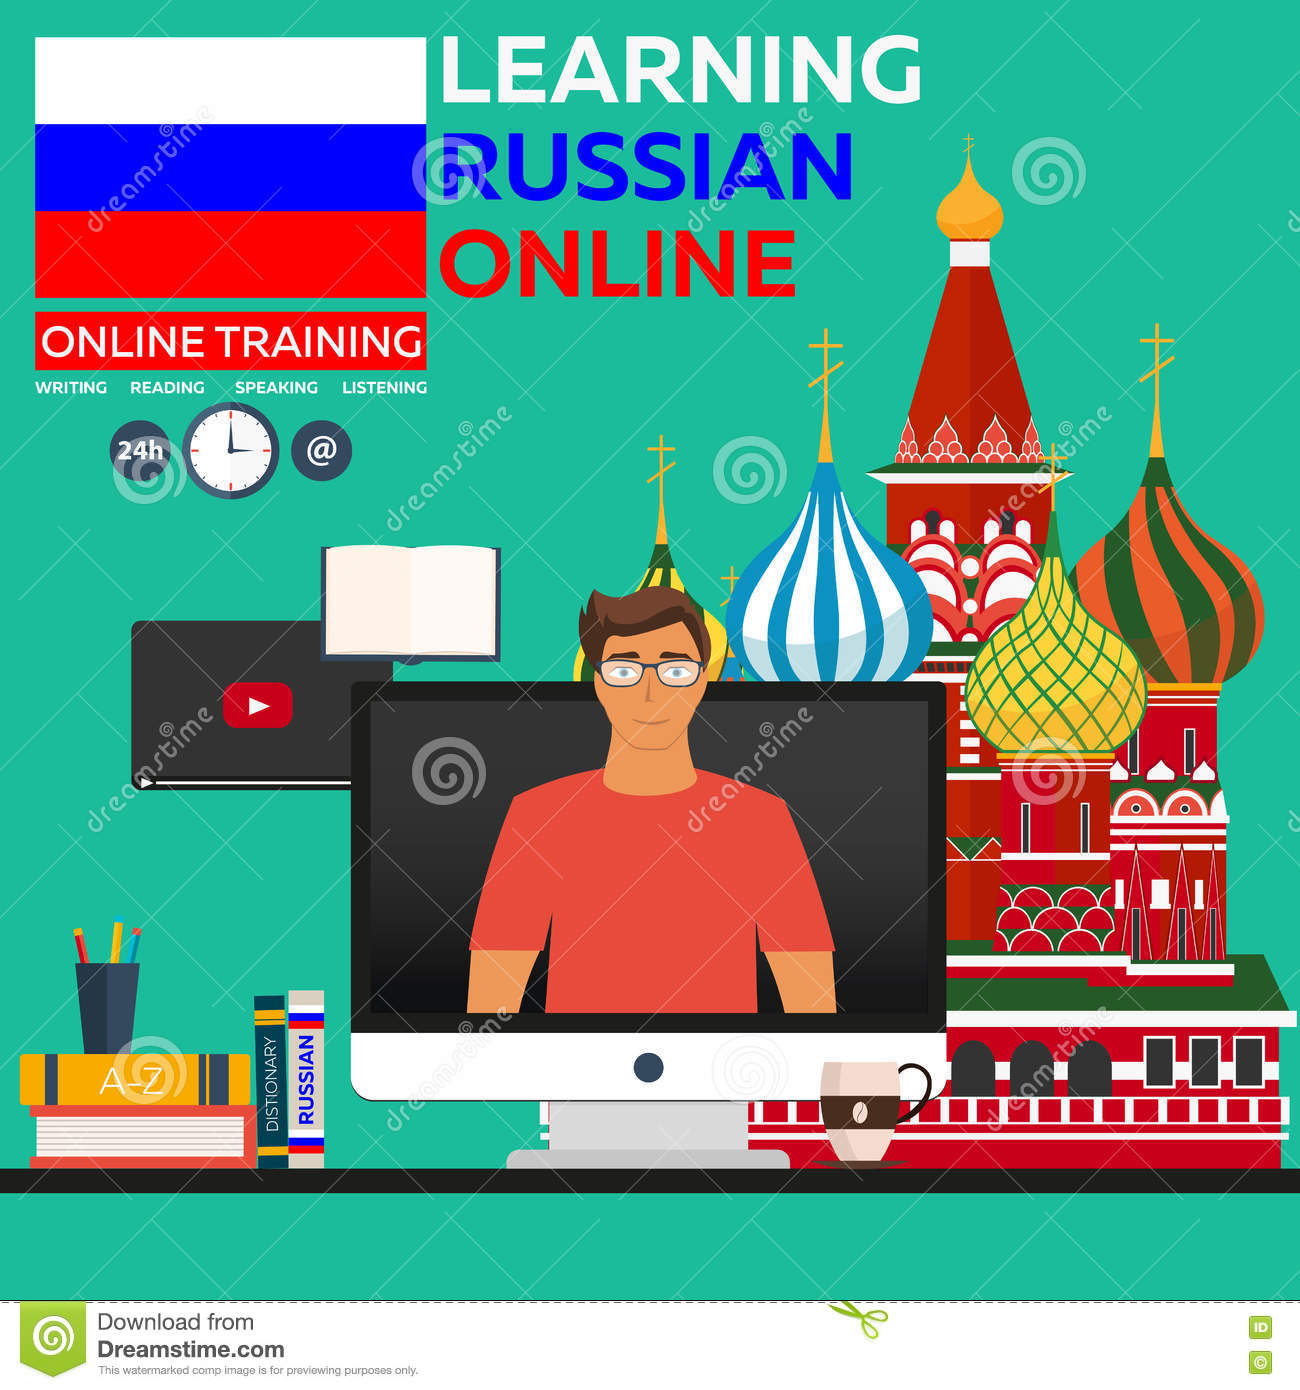 CosmoLearning Programming | Courses & Video Lectures